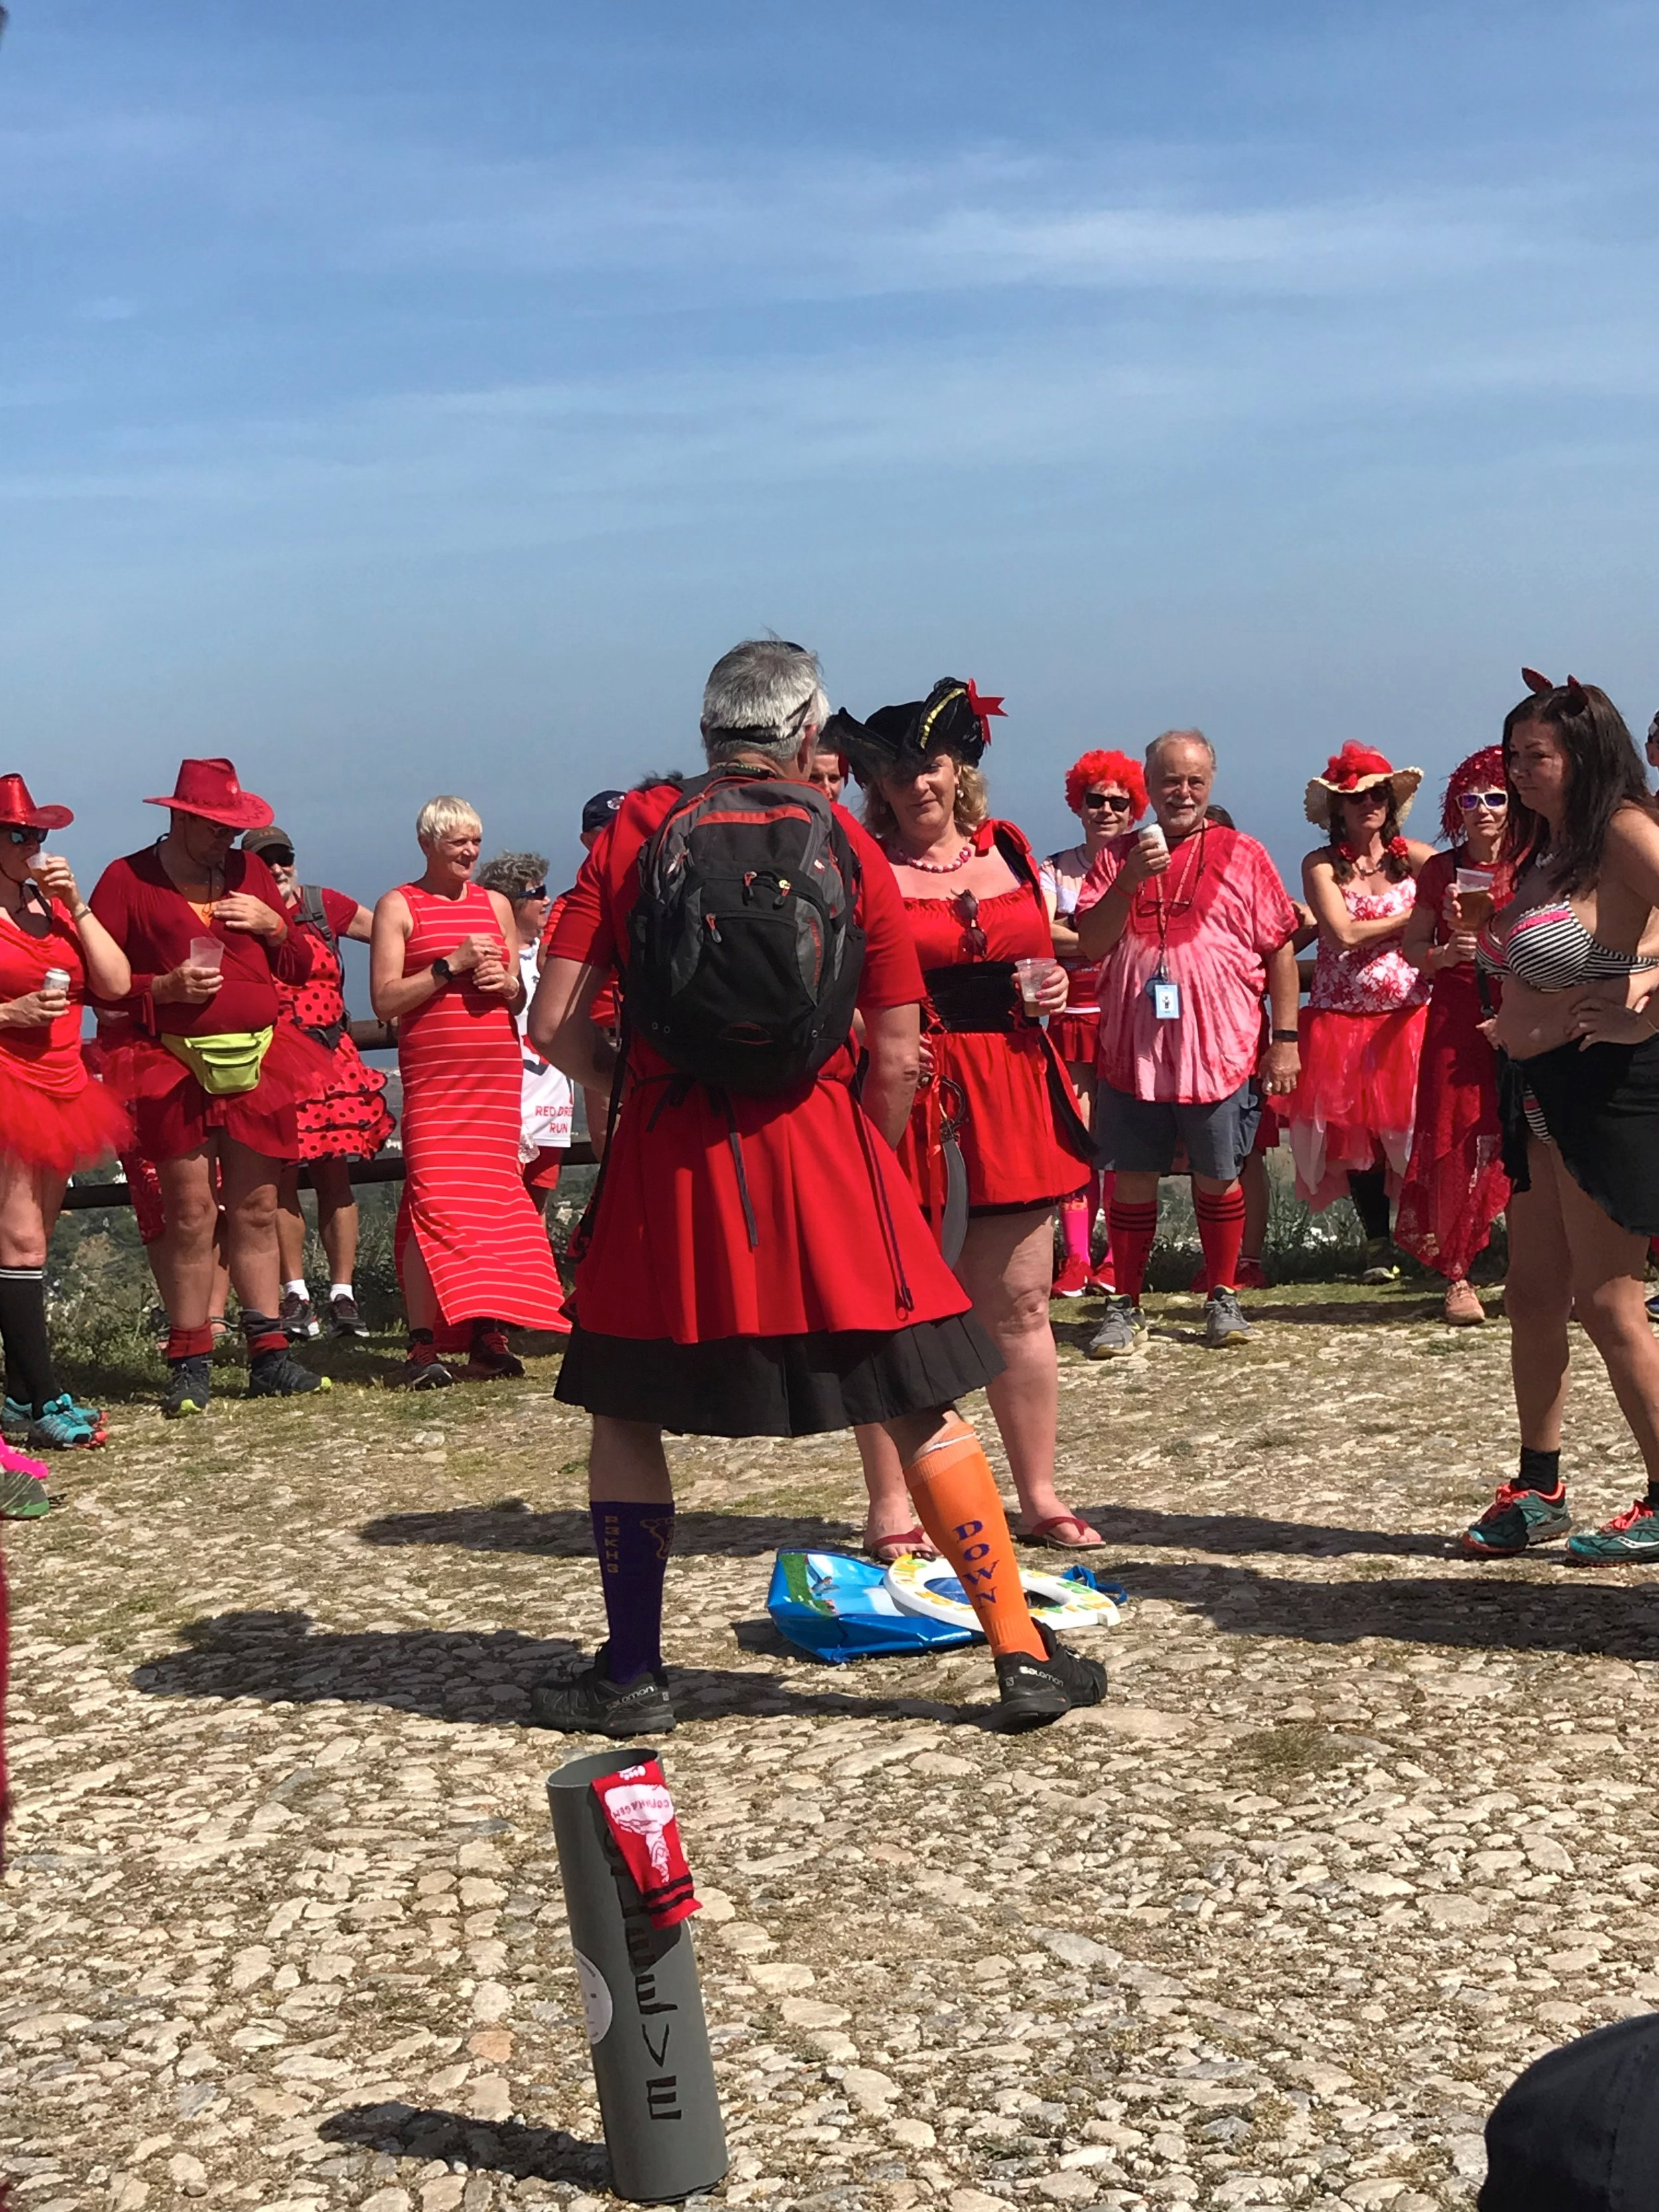 Mijas H3 - Hash Flash Red Hot Chili - 30th Ann. Red Dress Run 1631  - 16 May 2019 - Photo12.jpg